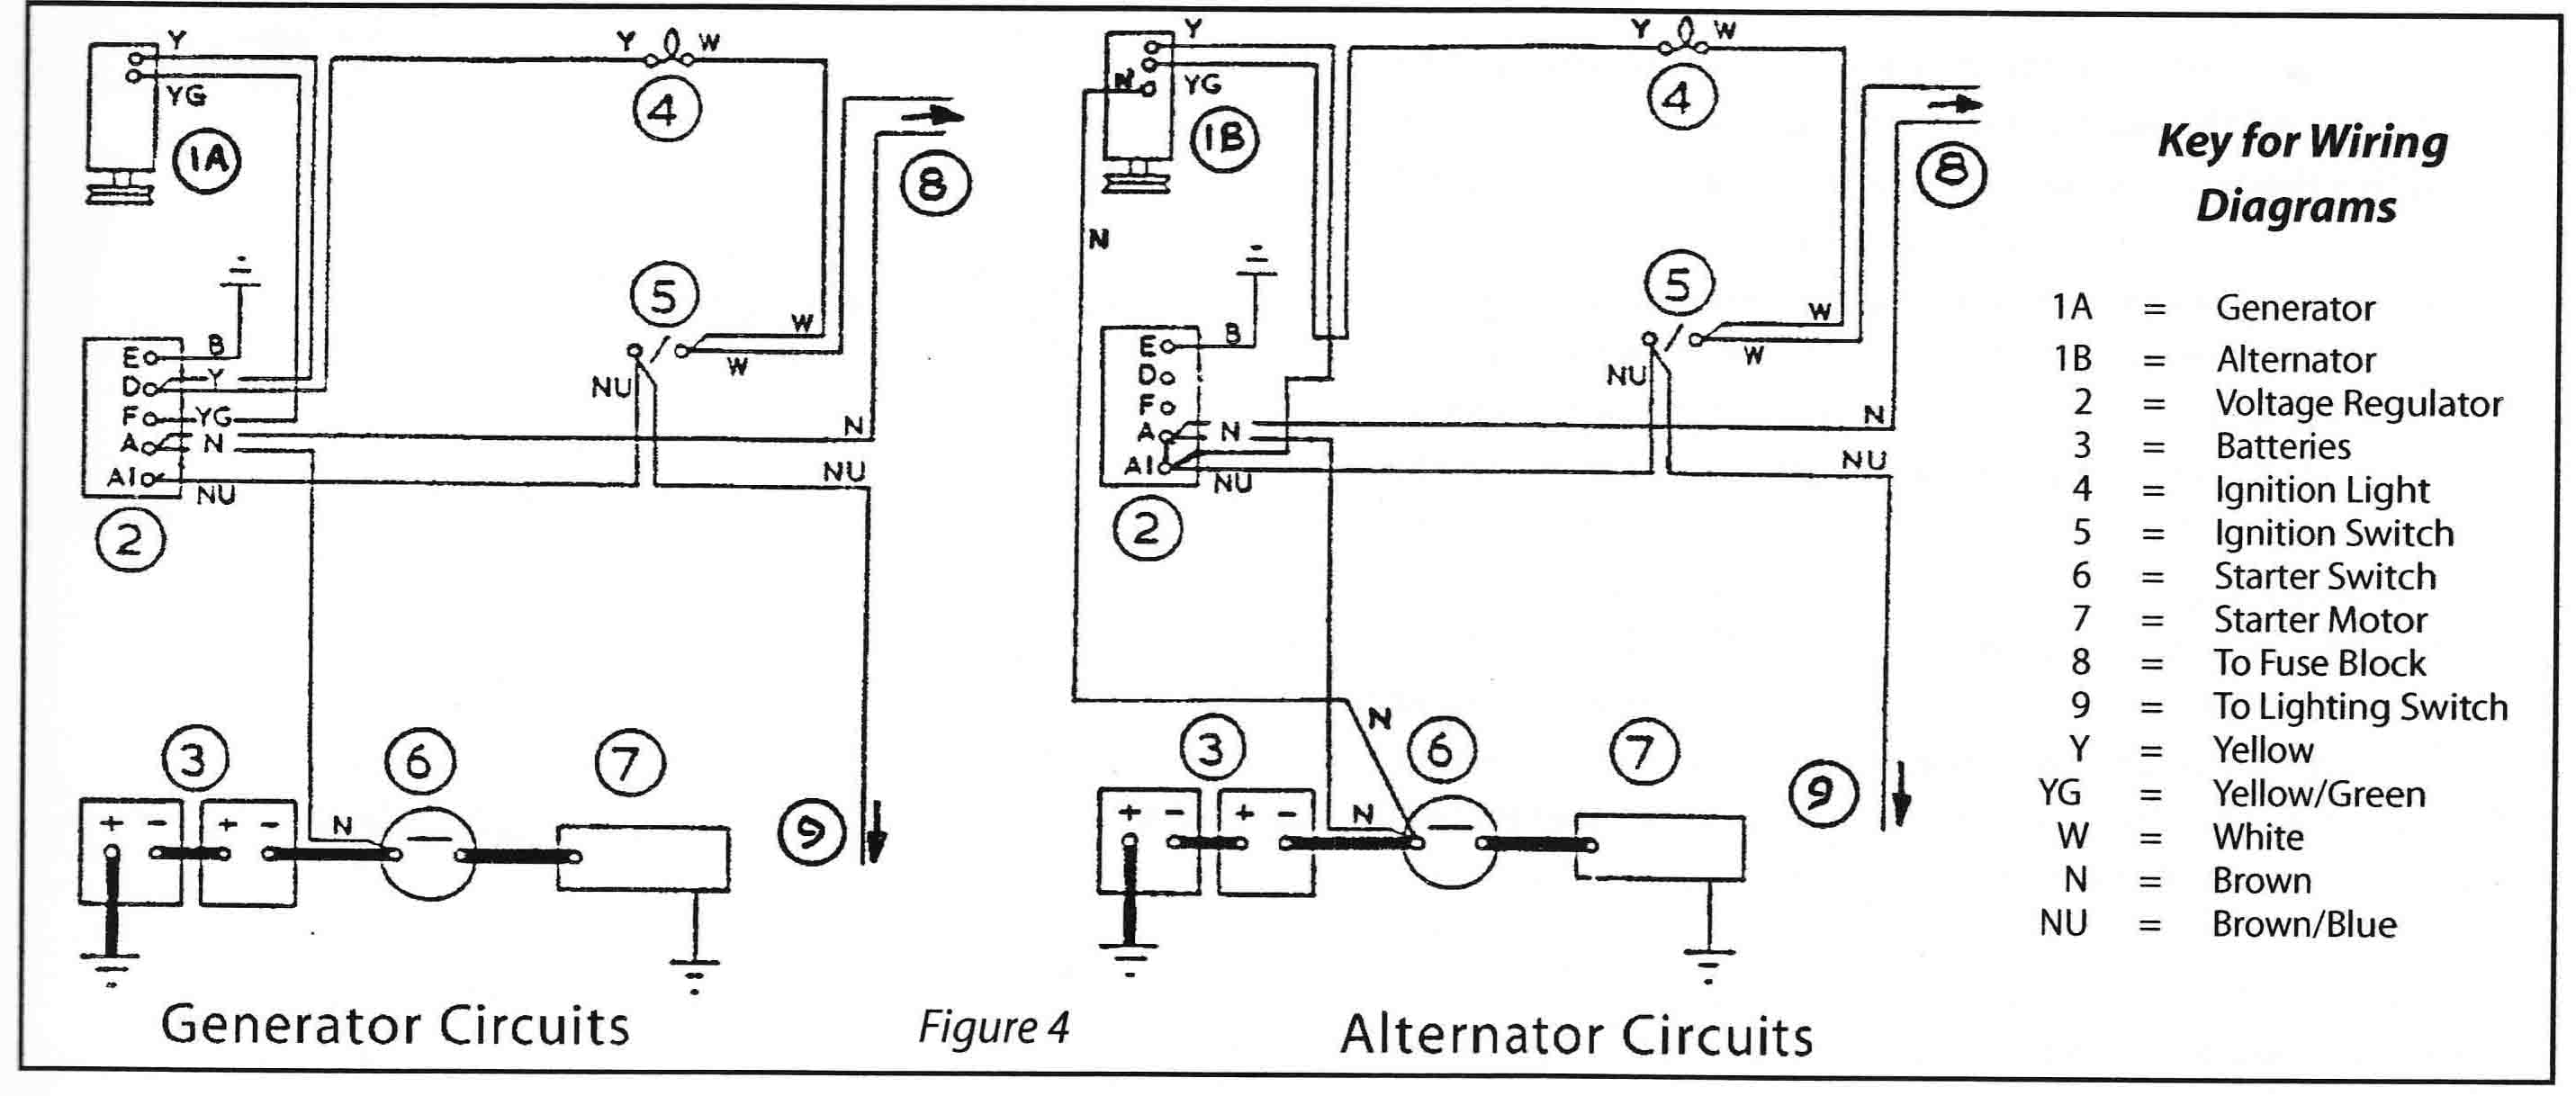 73 Mg Midget Wiring Diagrams Download 1973 Diagram Get Free Image About 1972 Pontiac Firebird